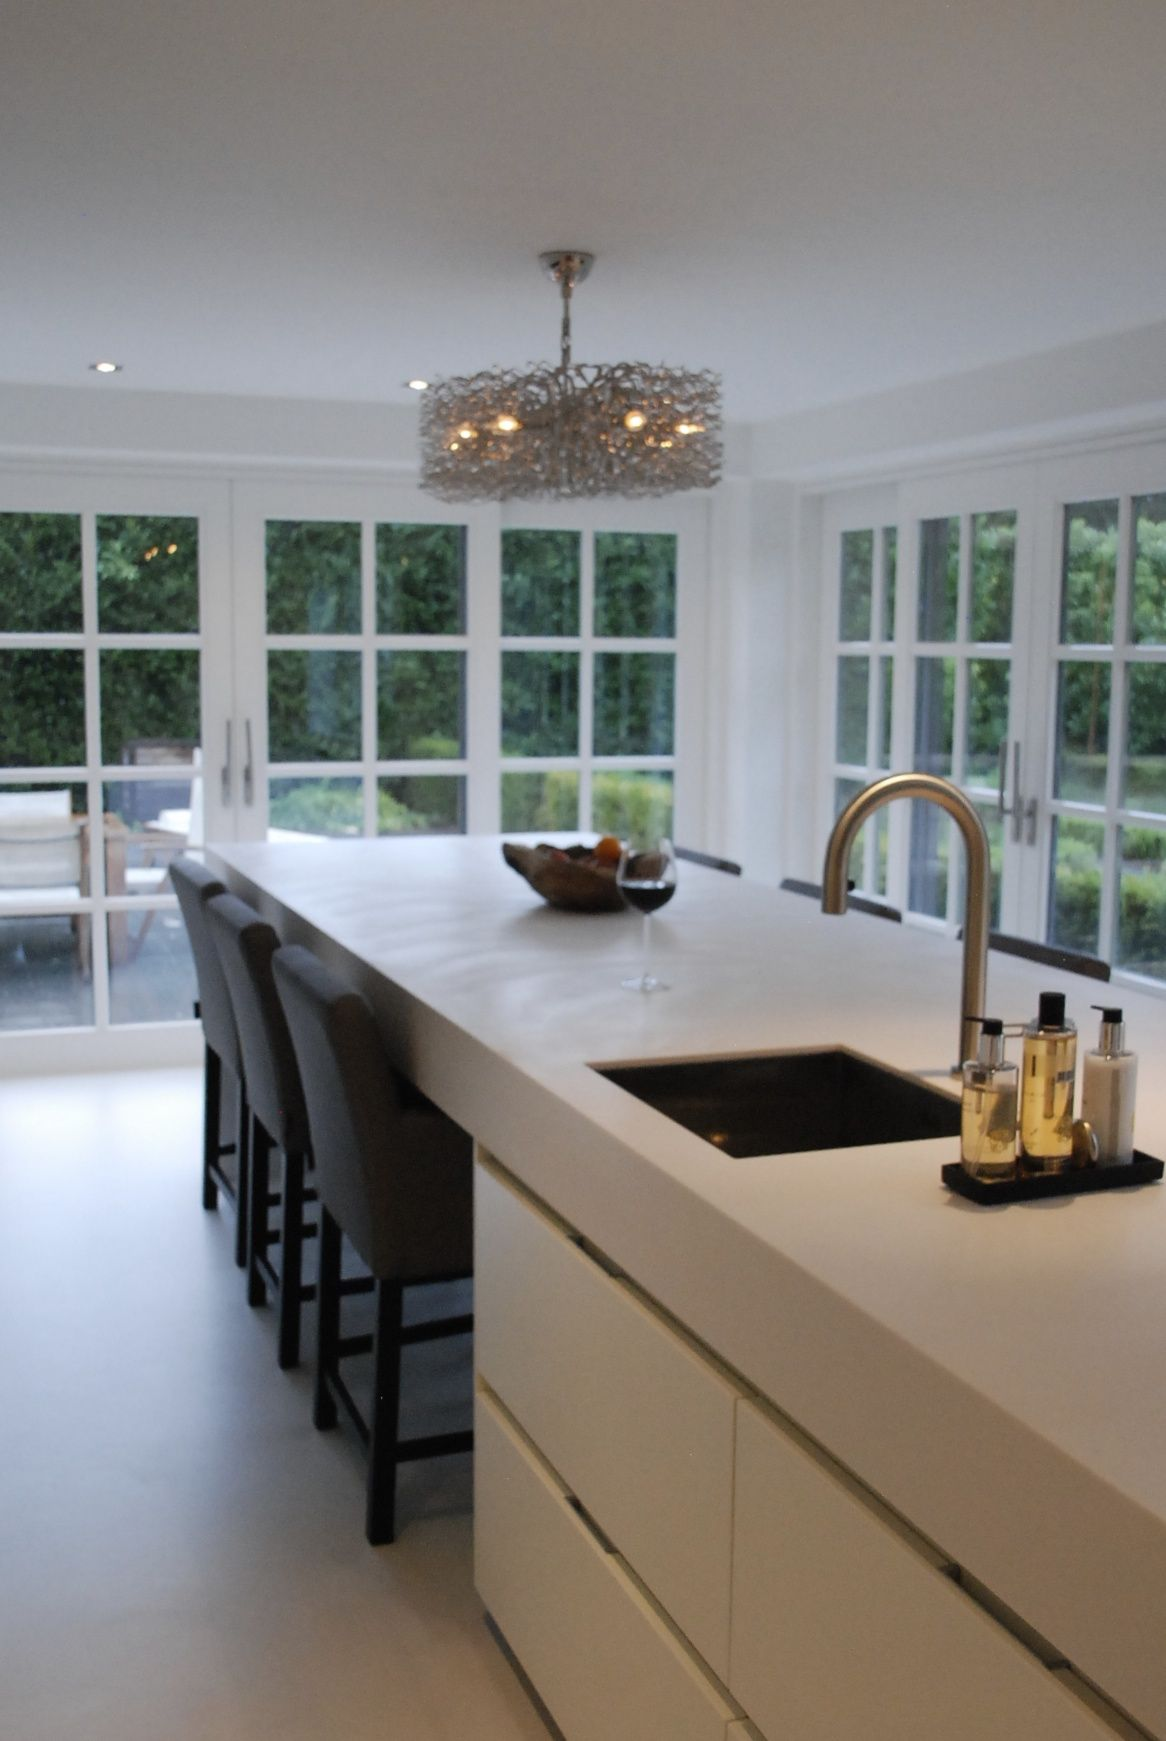 Witte keuken kees marcelis interiors pinterest kitchens interiors and house - Outs studio keuken ...